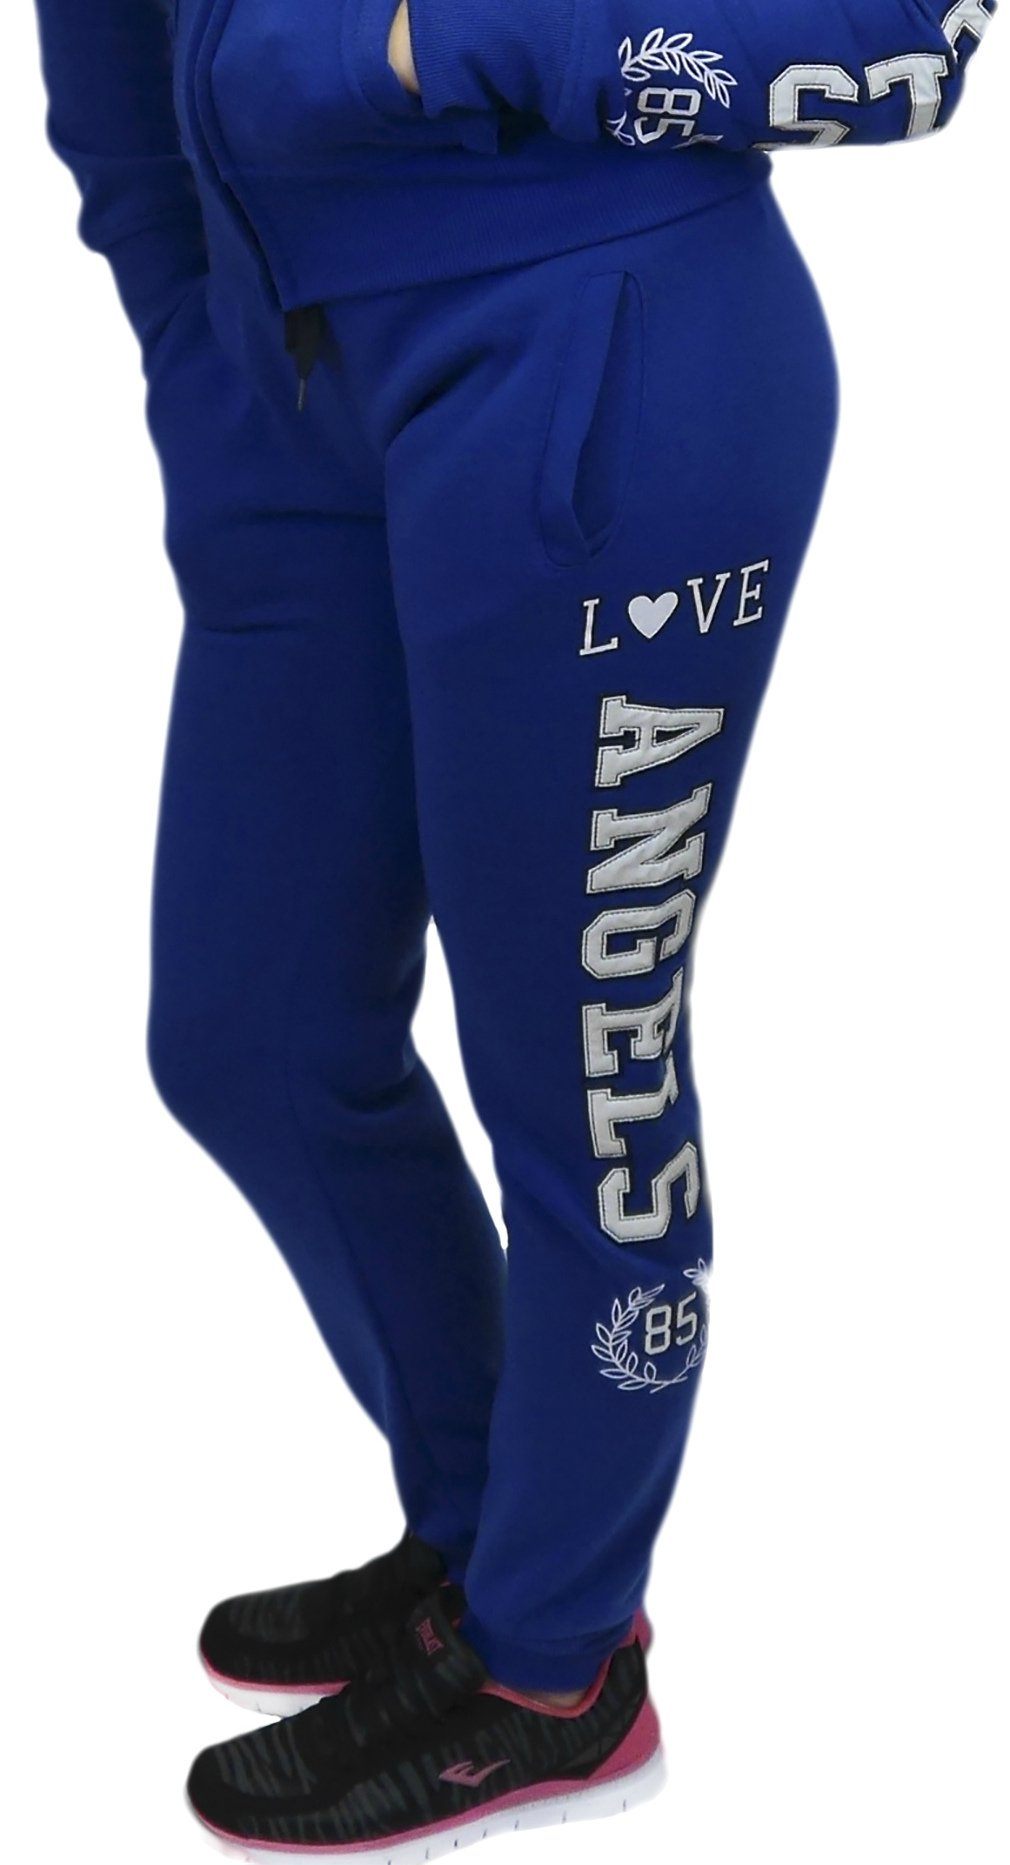 Love Angels 85 Joggers Cotton Blend Sweatpants Loungewear Fleece Lining, Royal Blue Small